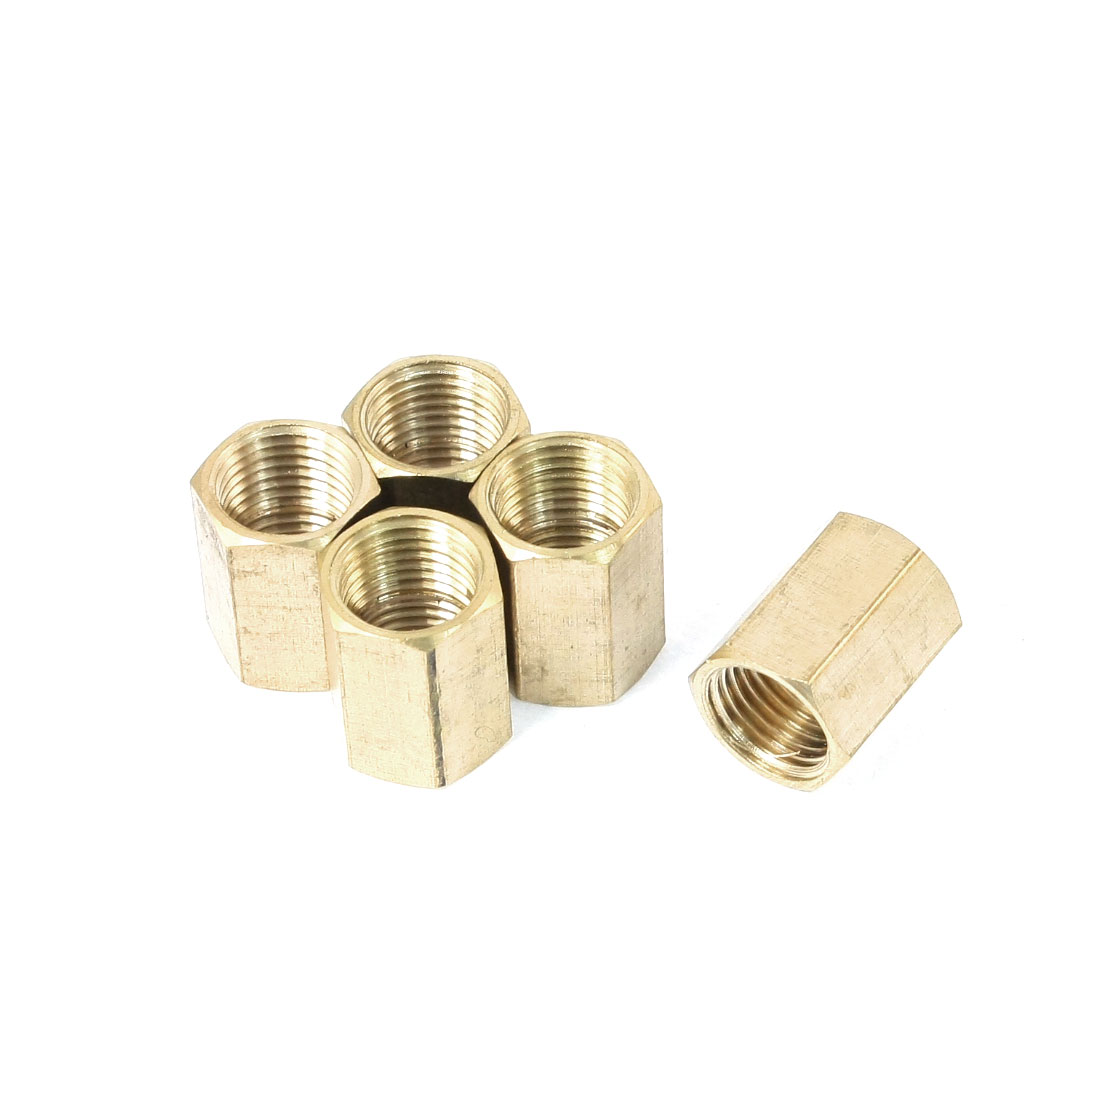 5PCS 1/4PT Female Thread Metal Straight Quick Release Coupler Fitting Joint Connector Adapter Fastener Brass Tone